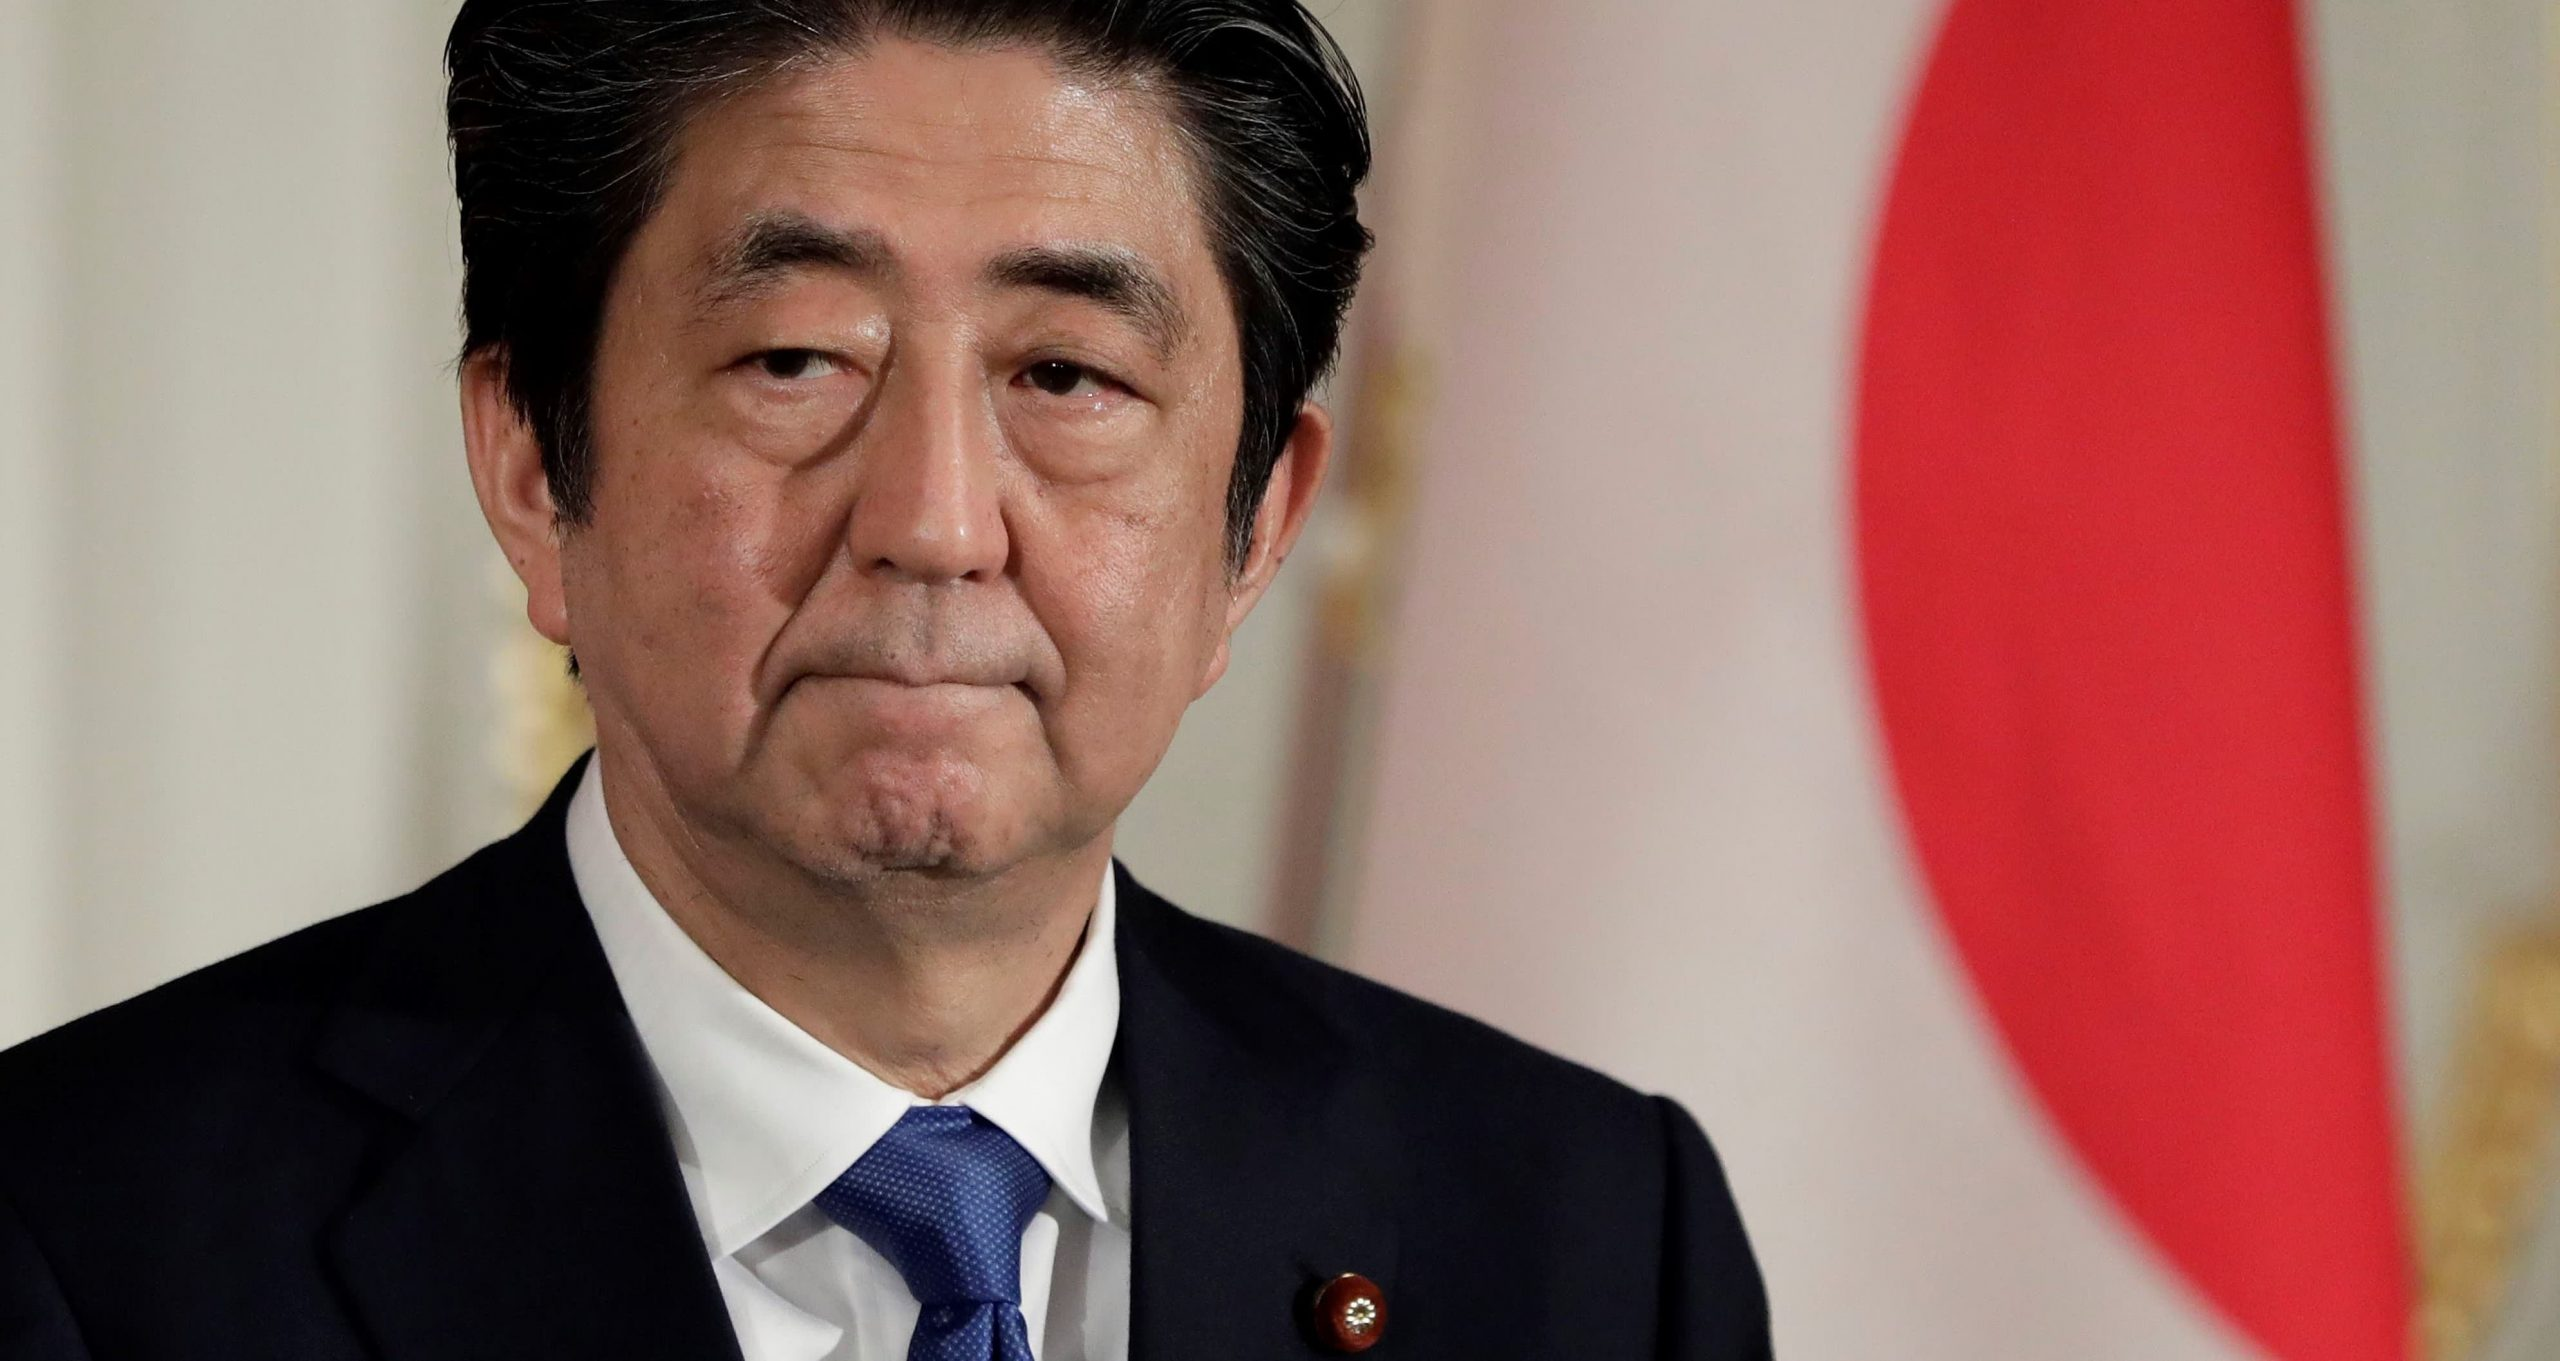 Abe refused to resign despite the scandal surrounding the Tokyo prosecutor